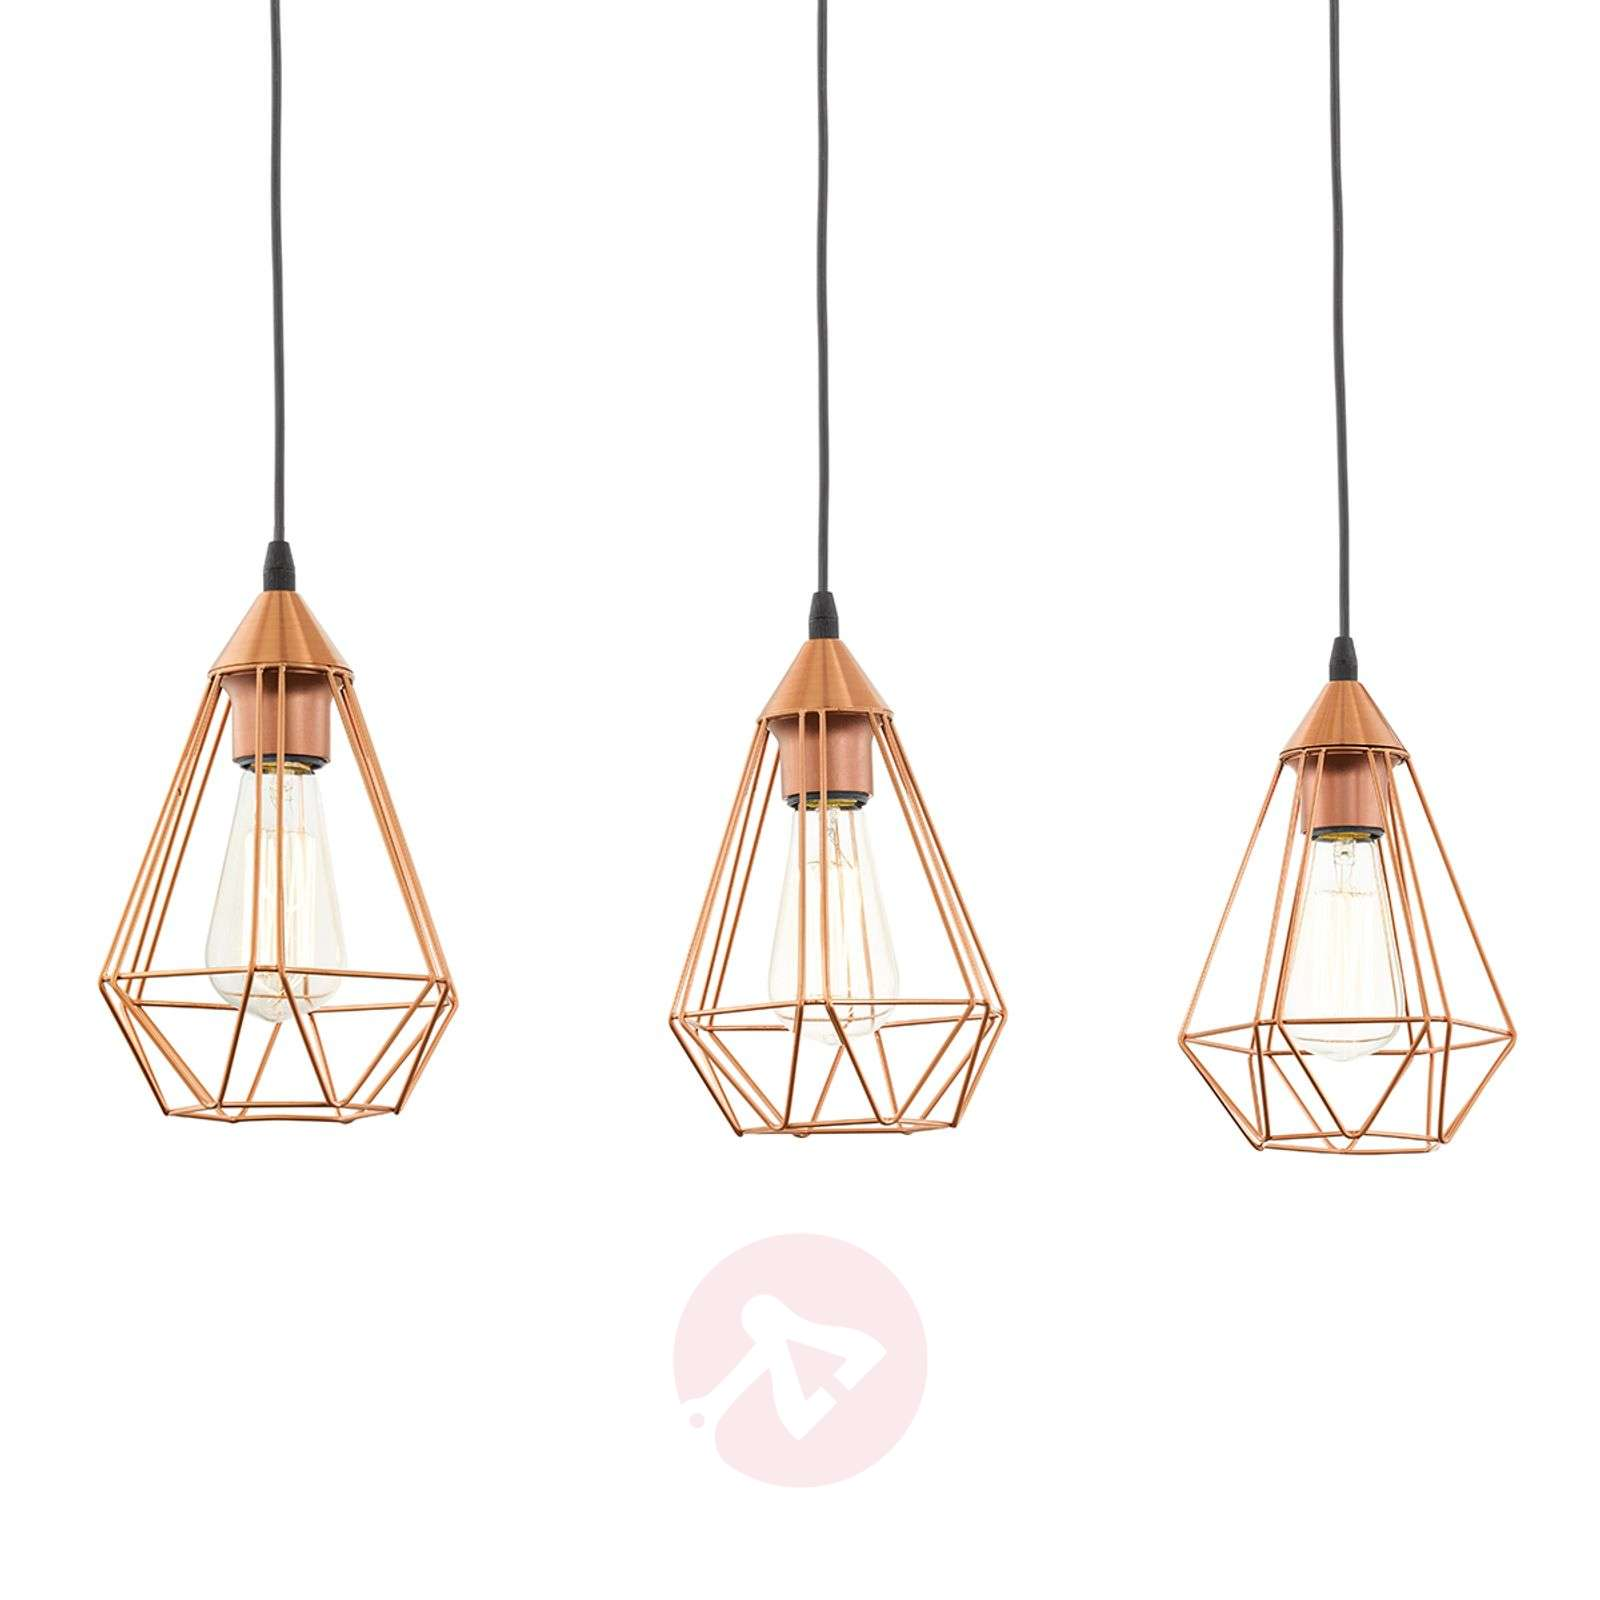 3-bulb vintage pendant light Tarbes in copper-3031864-01